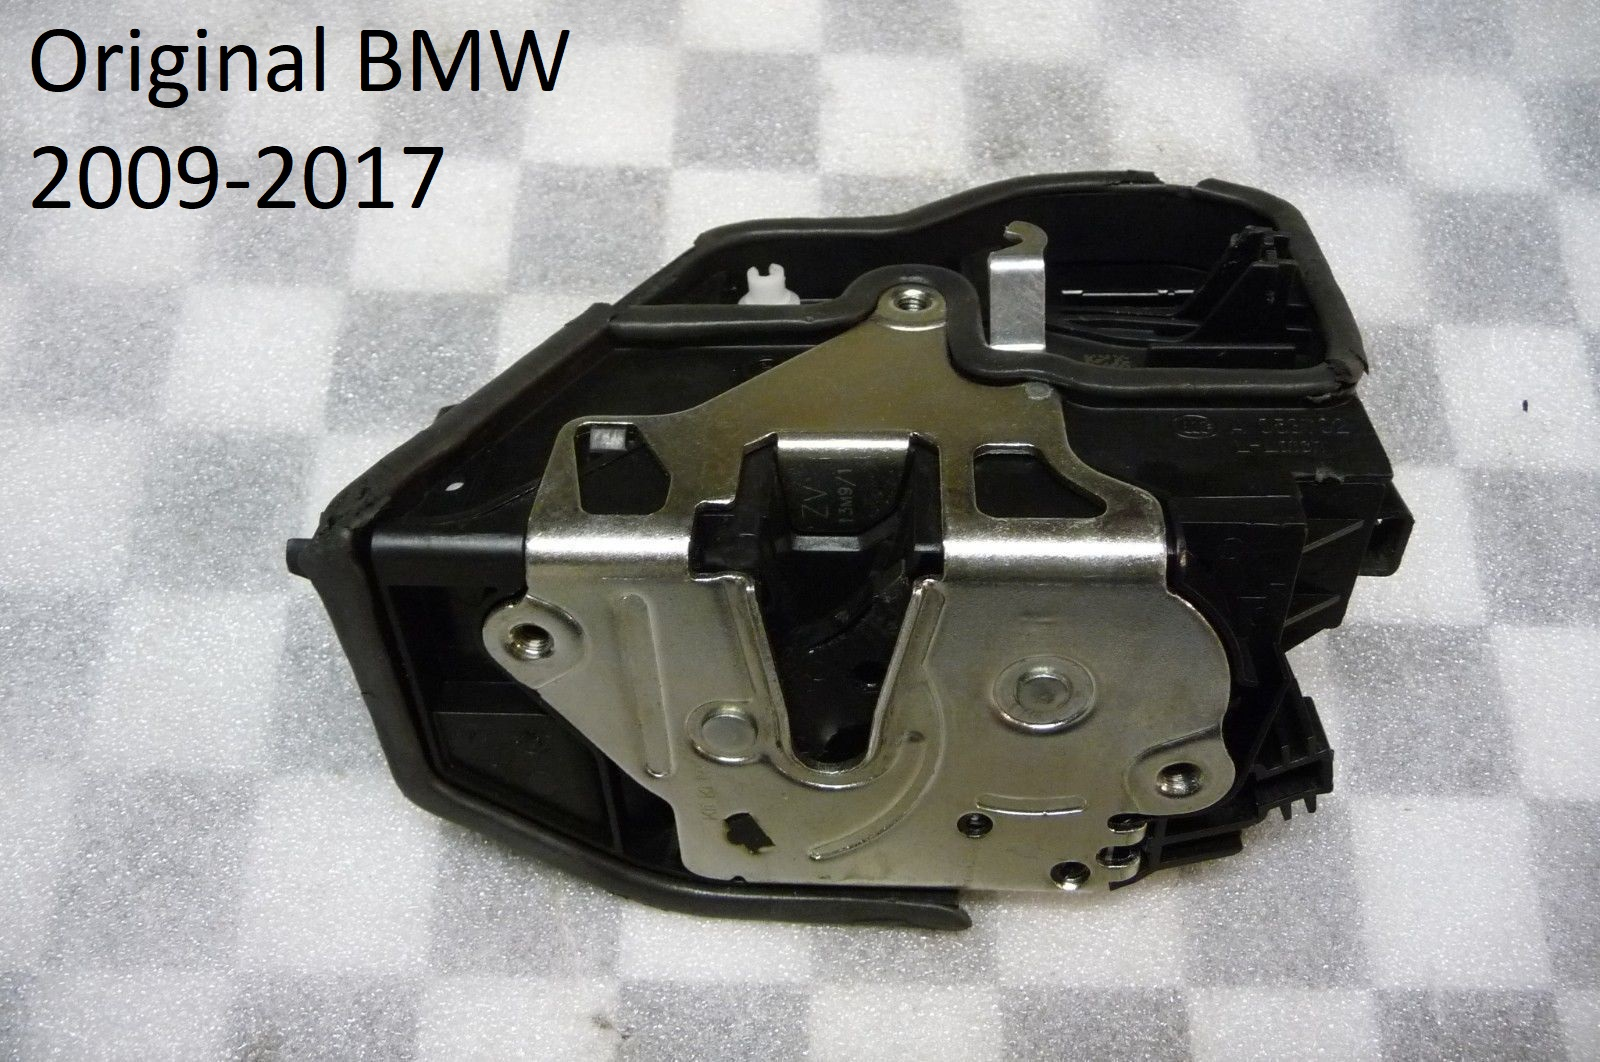 2009 2010 2011 2012 2013 2014 2015 2016 2017 BMW E82 E88 E91 F30 F31 E60 E61 E70 F36 428I 435I X1 X5 135i 335i 550i  Front Left Door Lock Locking Closing System Latch 51217229461 ; 51217229455; 51217229463 Original Oem